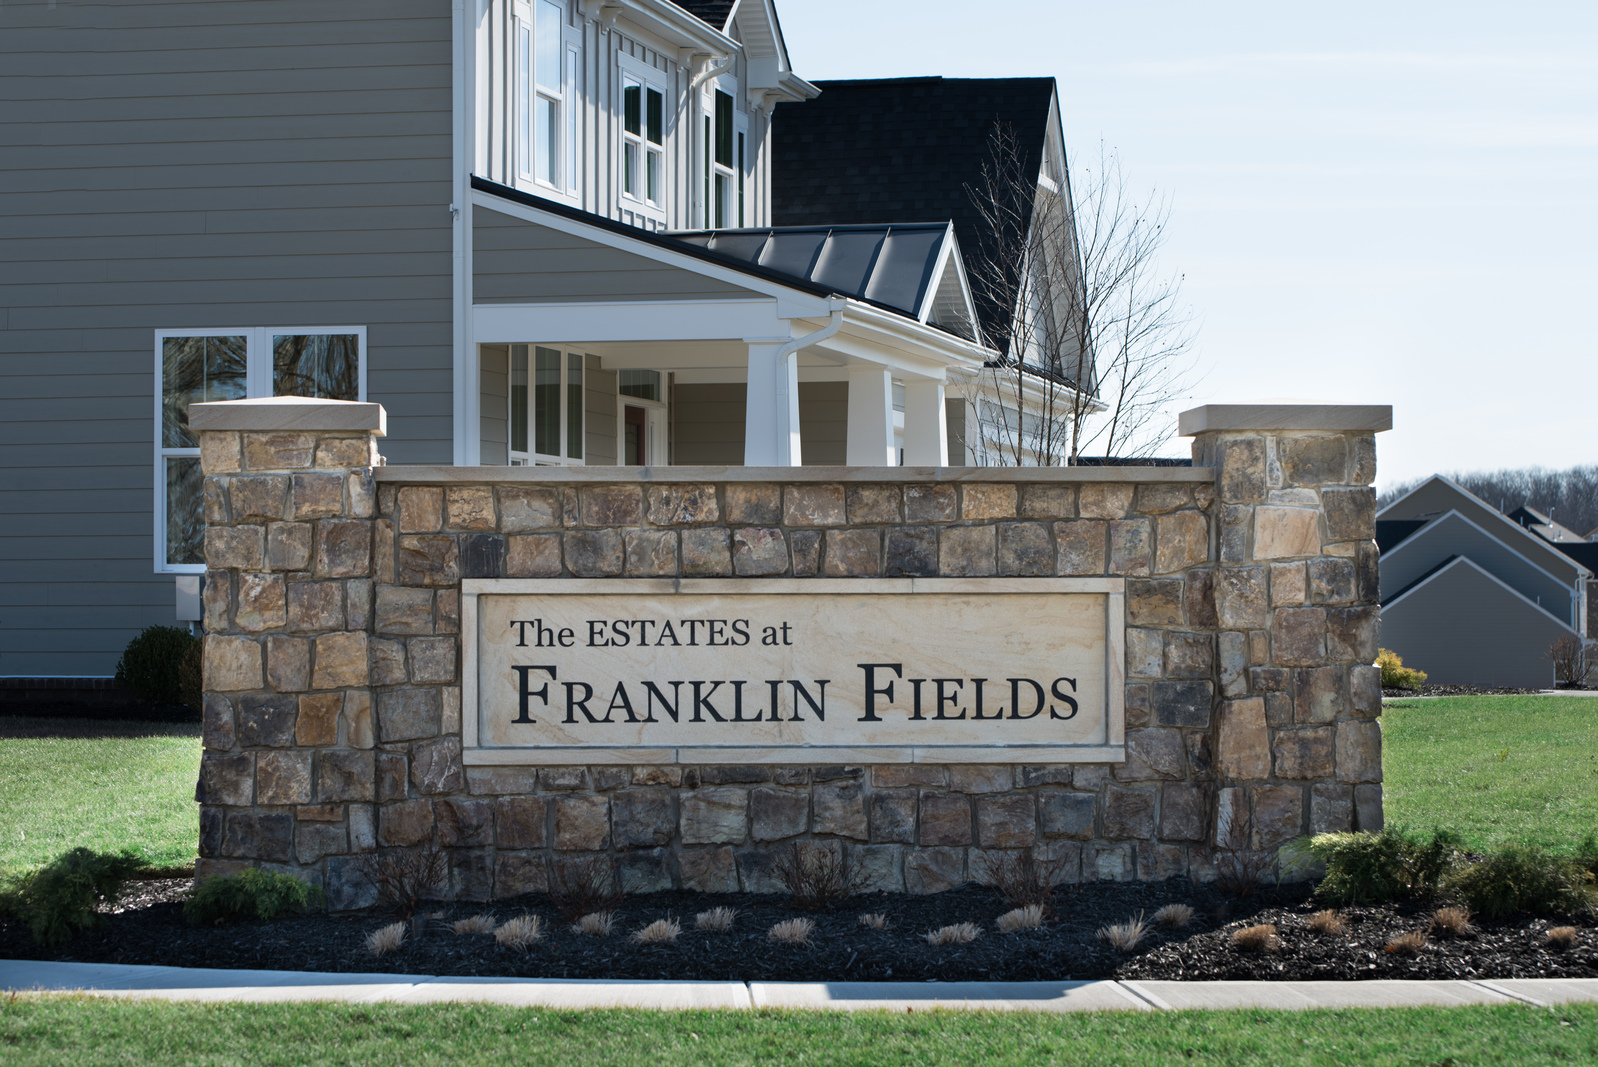 Conveniently-located community adjacent to Franklin Elementary School—minutes to I-79 & I-279 and easy access to Sewickley, and downtown Pittsburgh!